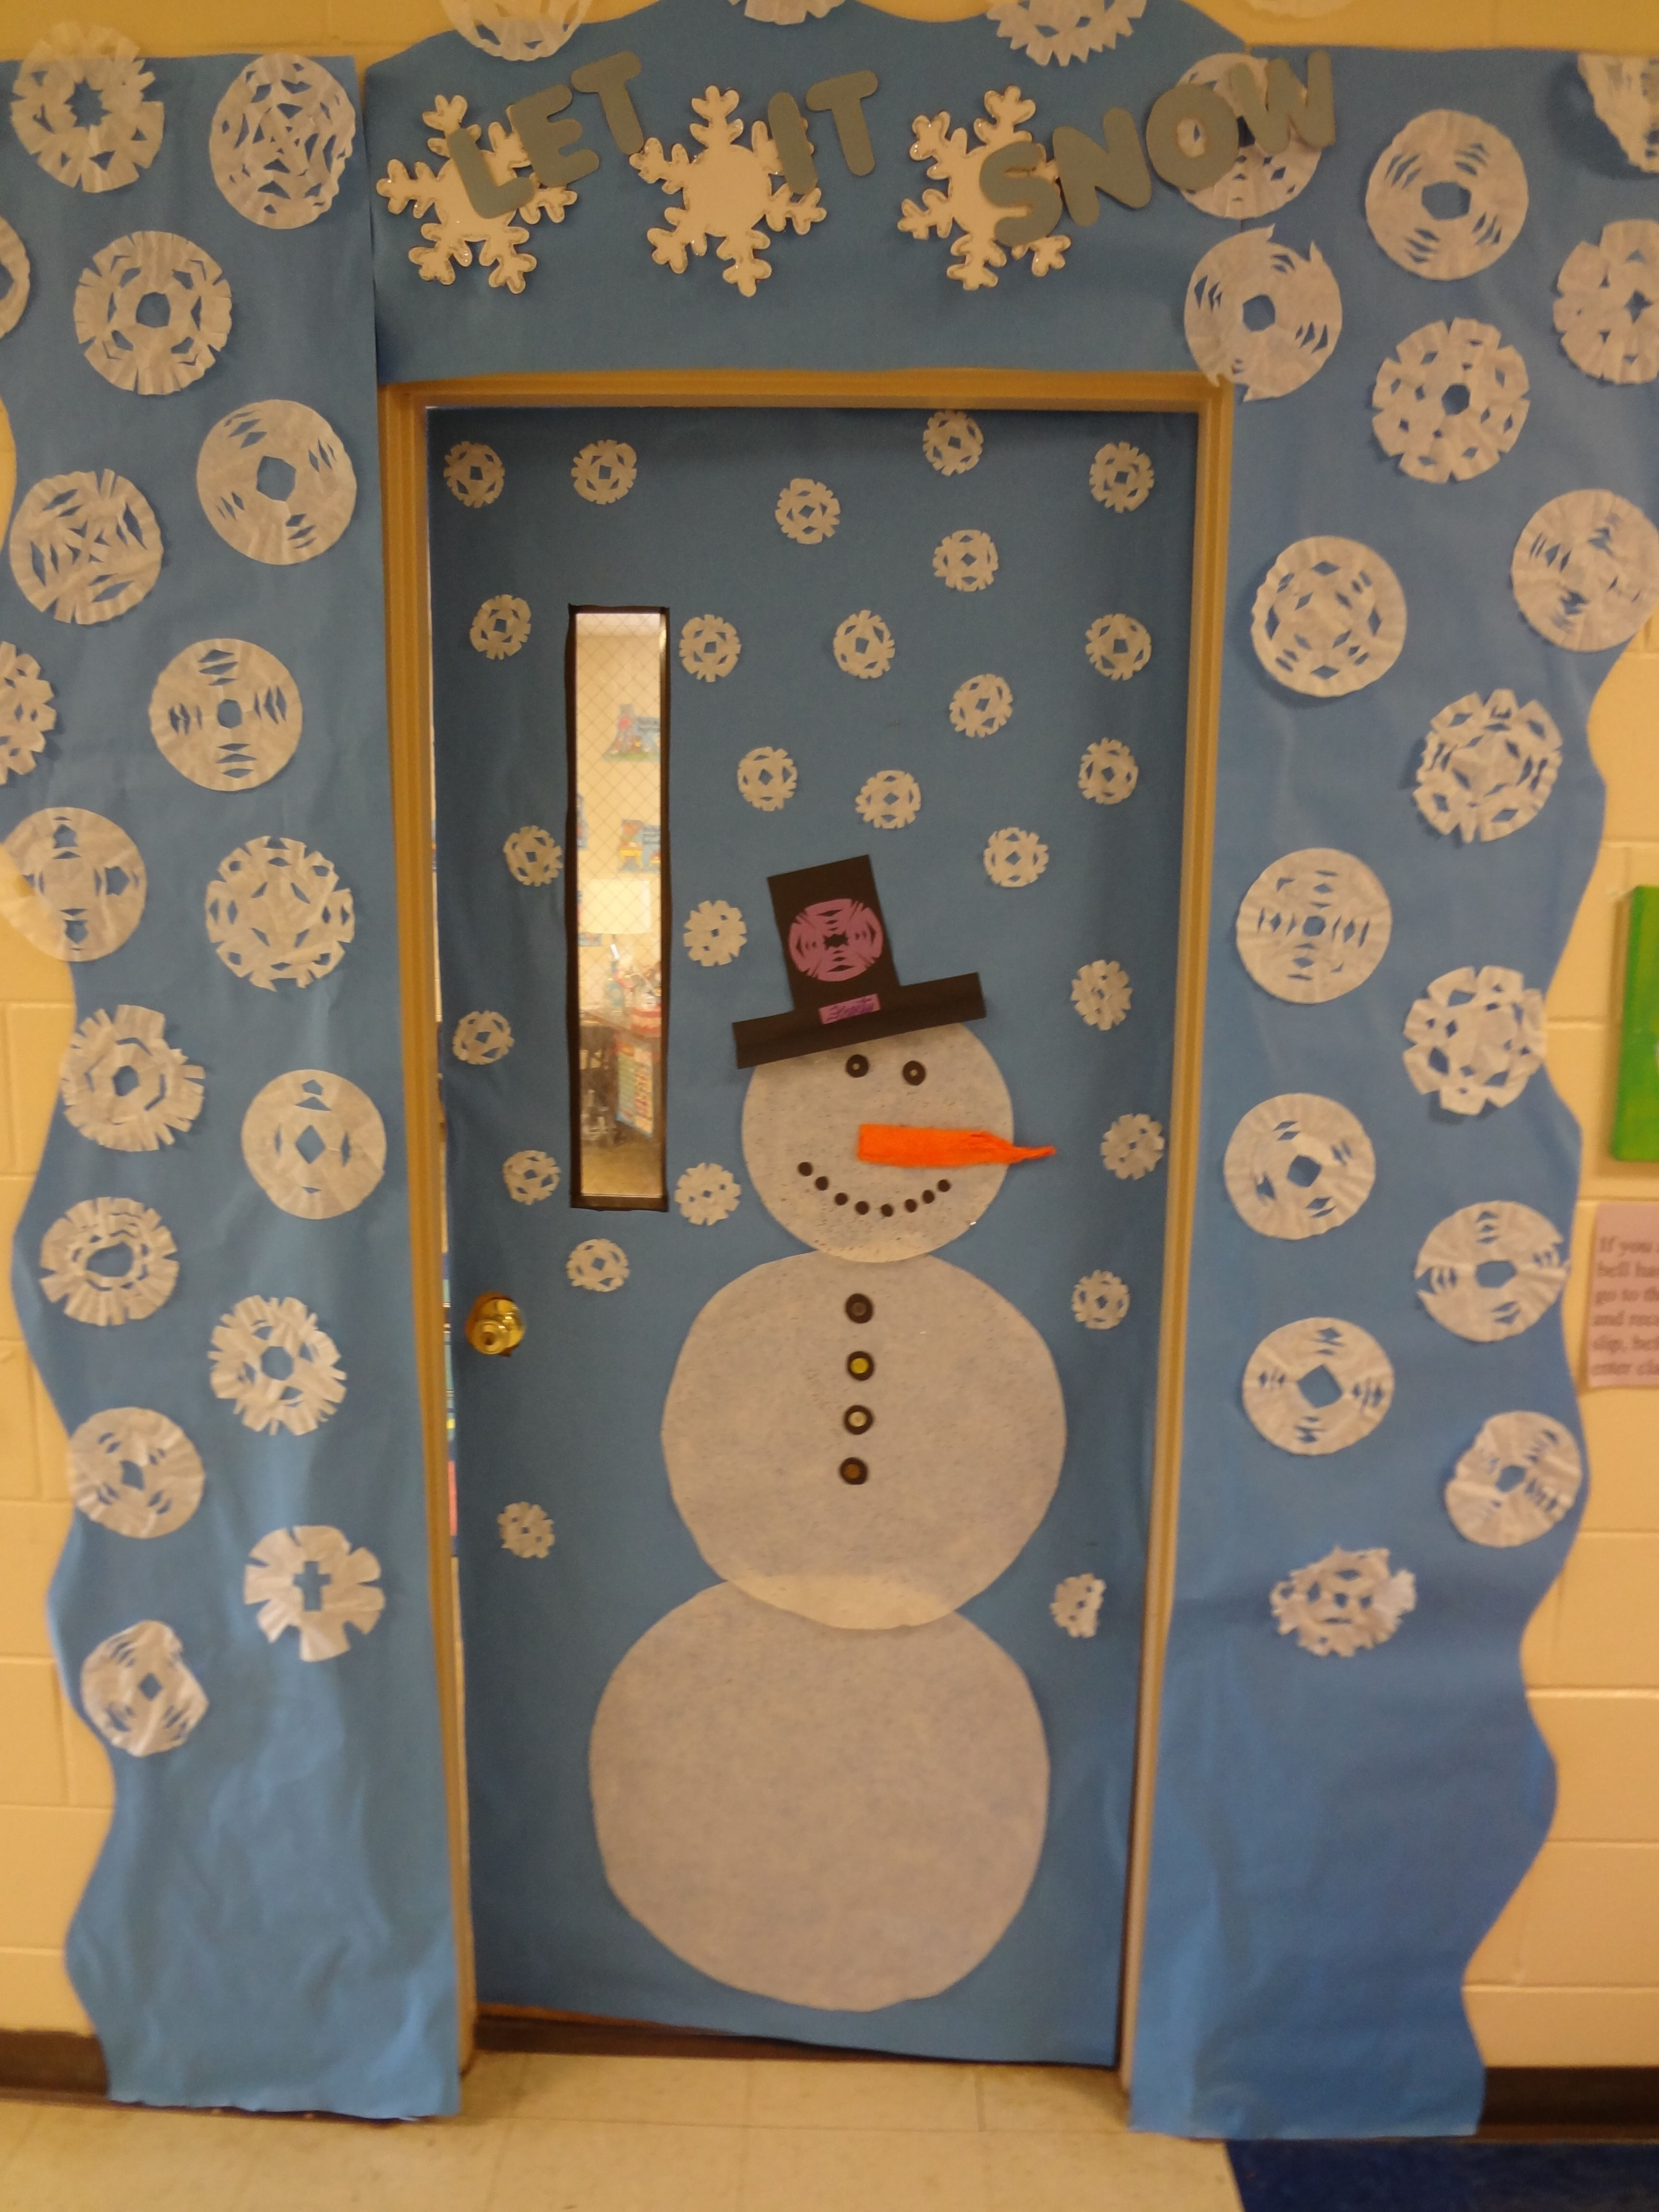 January classroom door decoration ideas - Decorating Ideas Classroom Door In January